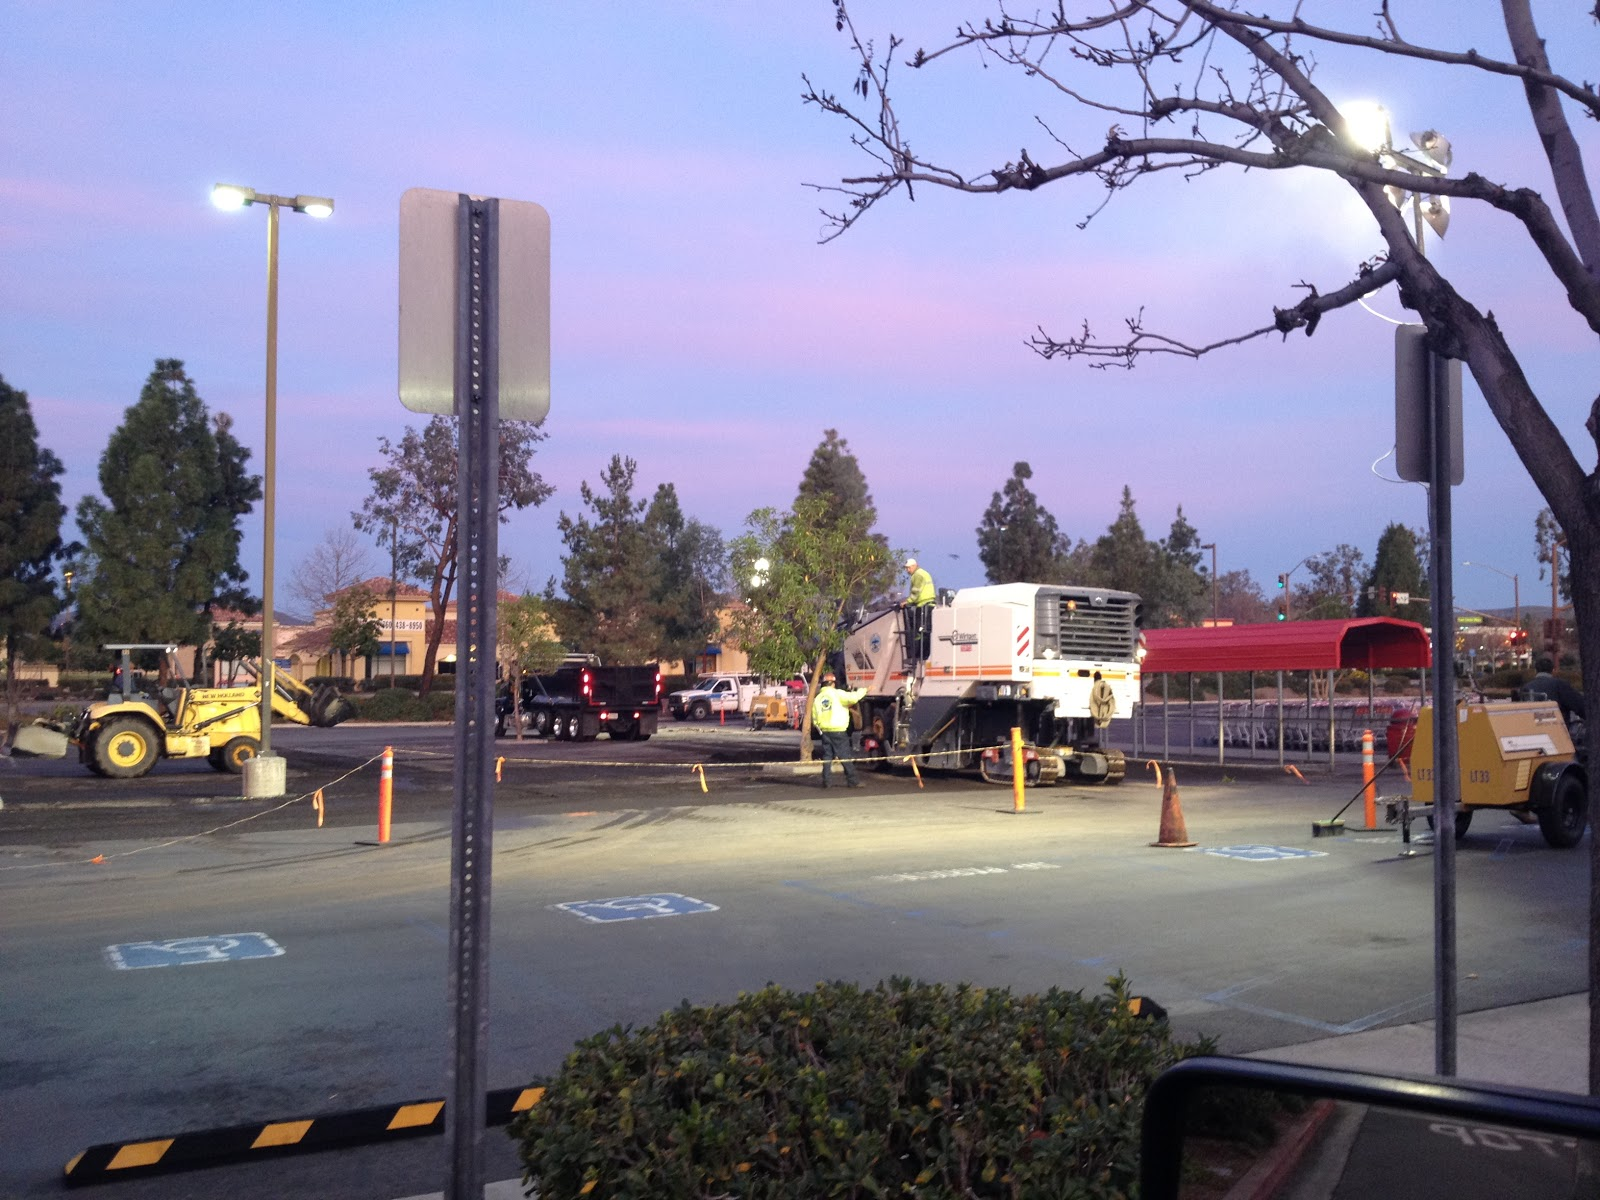 international paving services paving costco santee ca the dirt day 2 arrive at 2 a m pave 600 tons of hot asphalt rolled tested for compaction and complete by 8 a m lot ready to open for business by